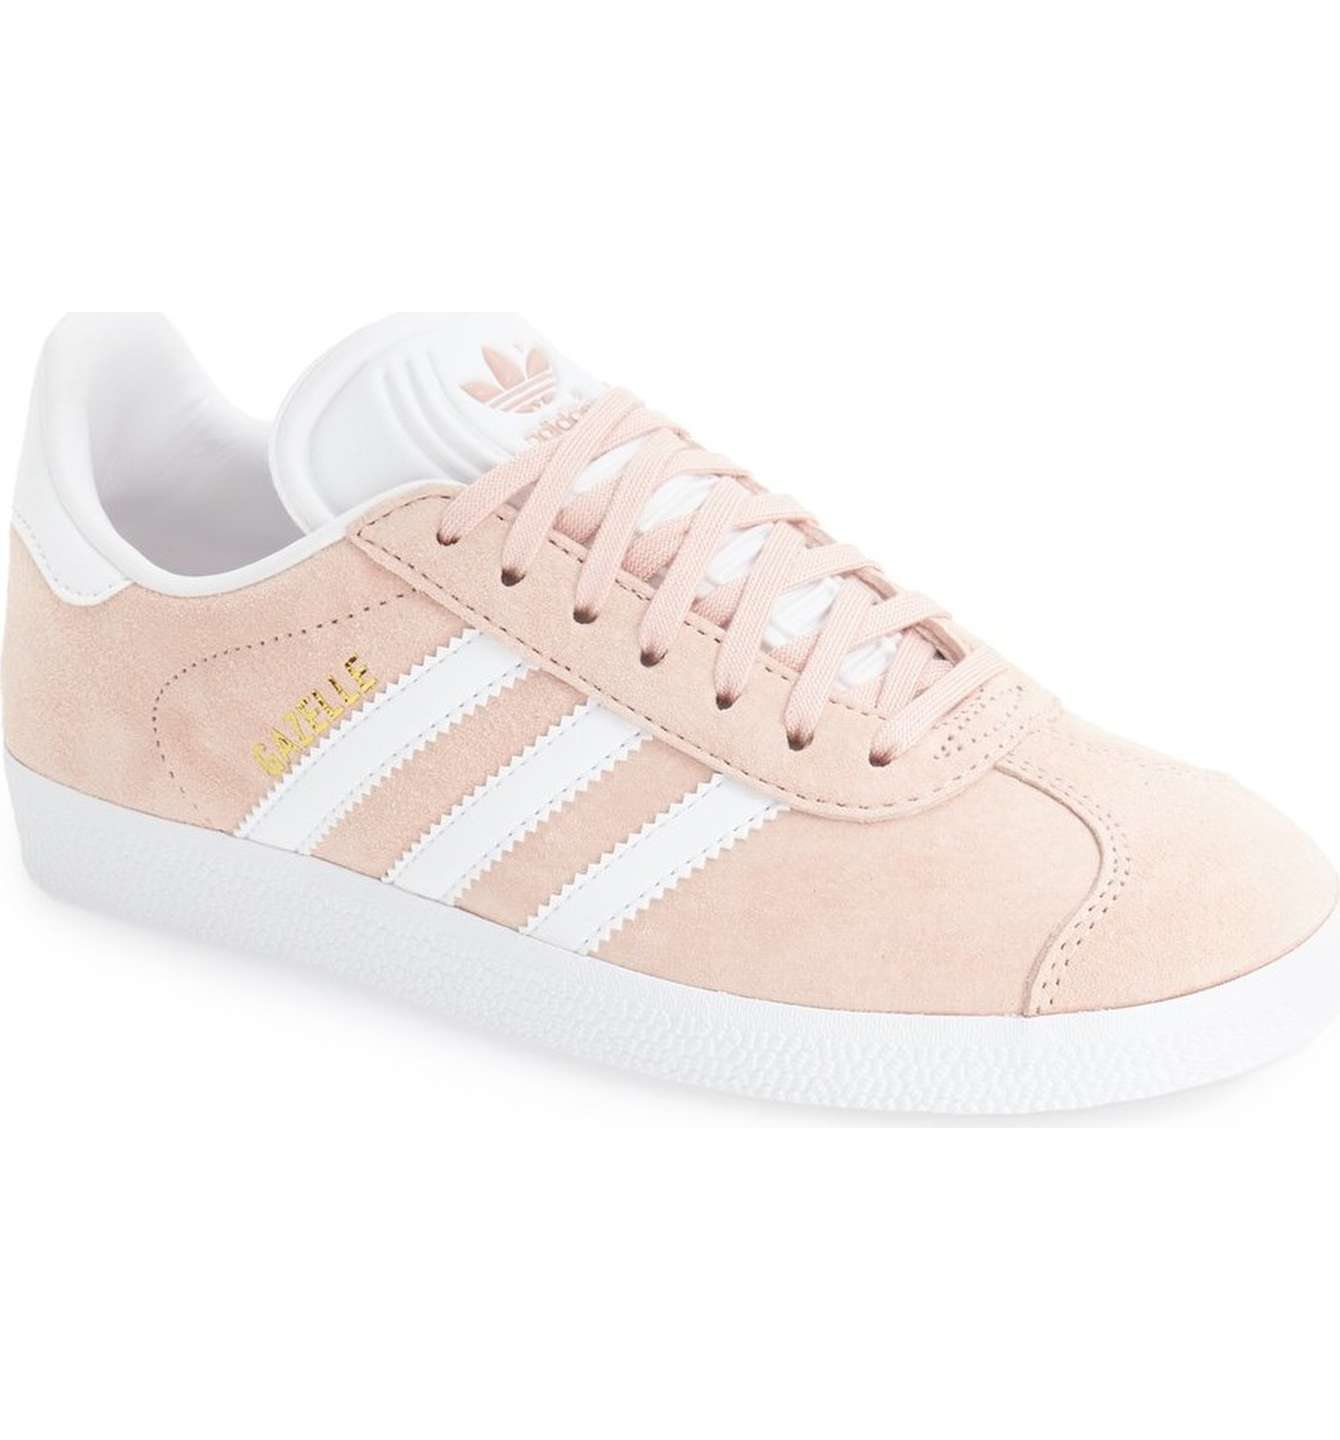 Pink Adidas Gazelle - The ever popular gazelle is oh so darling in this vapor pink! It runs large, so size down by a full size. SPLURGE at $78! / STEAL for $25! (runs small, size half up)